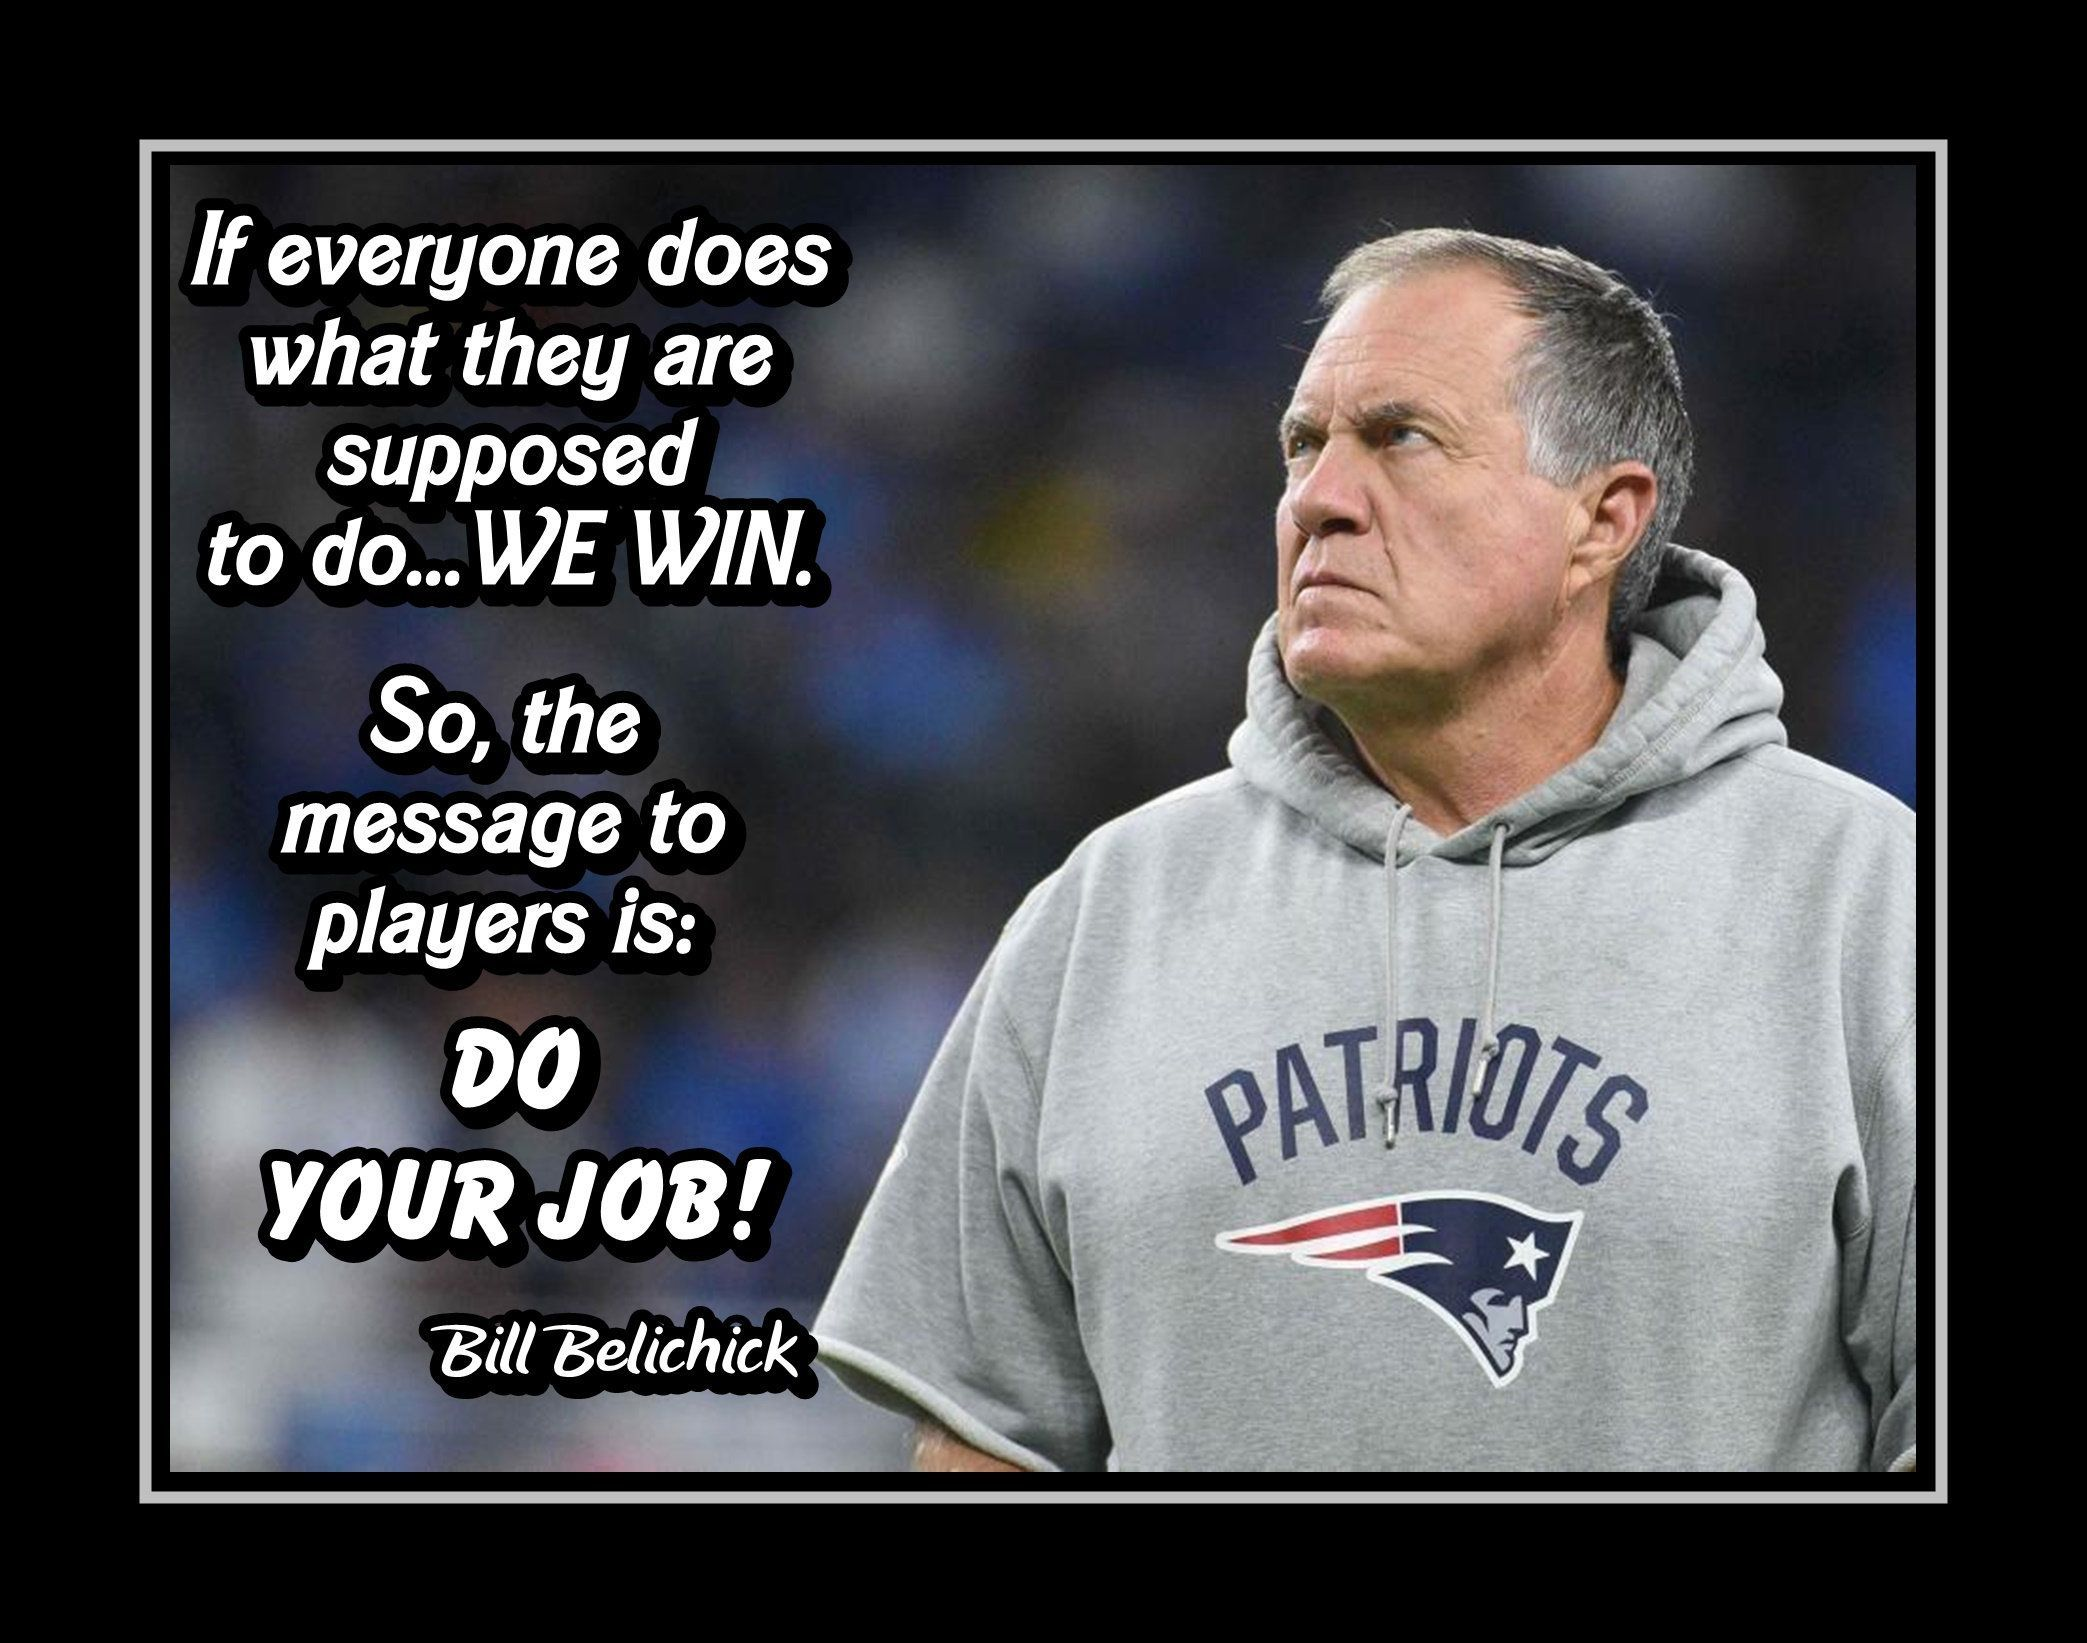 Inspirational Bill Belichick Patriots Do Your Job Quote Wall Art Poster Best Friend Coach Birthday Gif In 2020 Job Quotes Bill Belichick Inspirational Quotes Wall Art